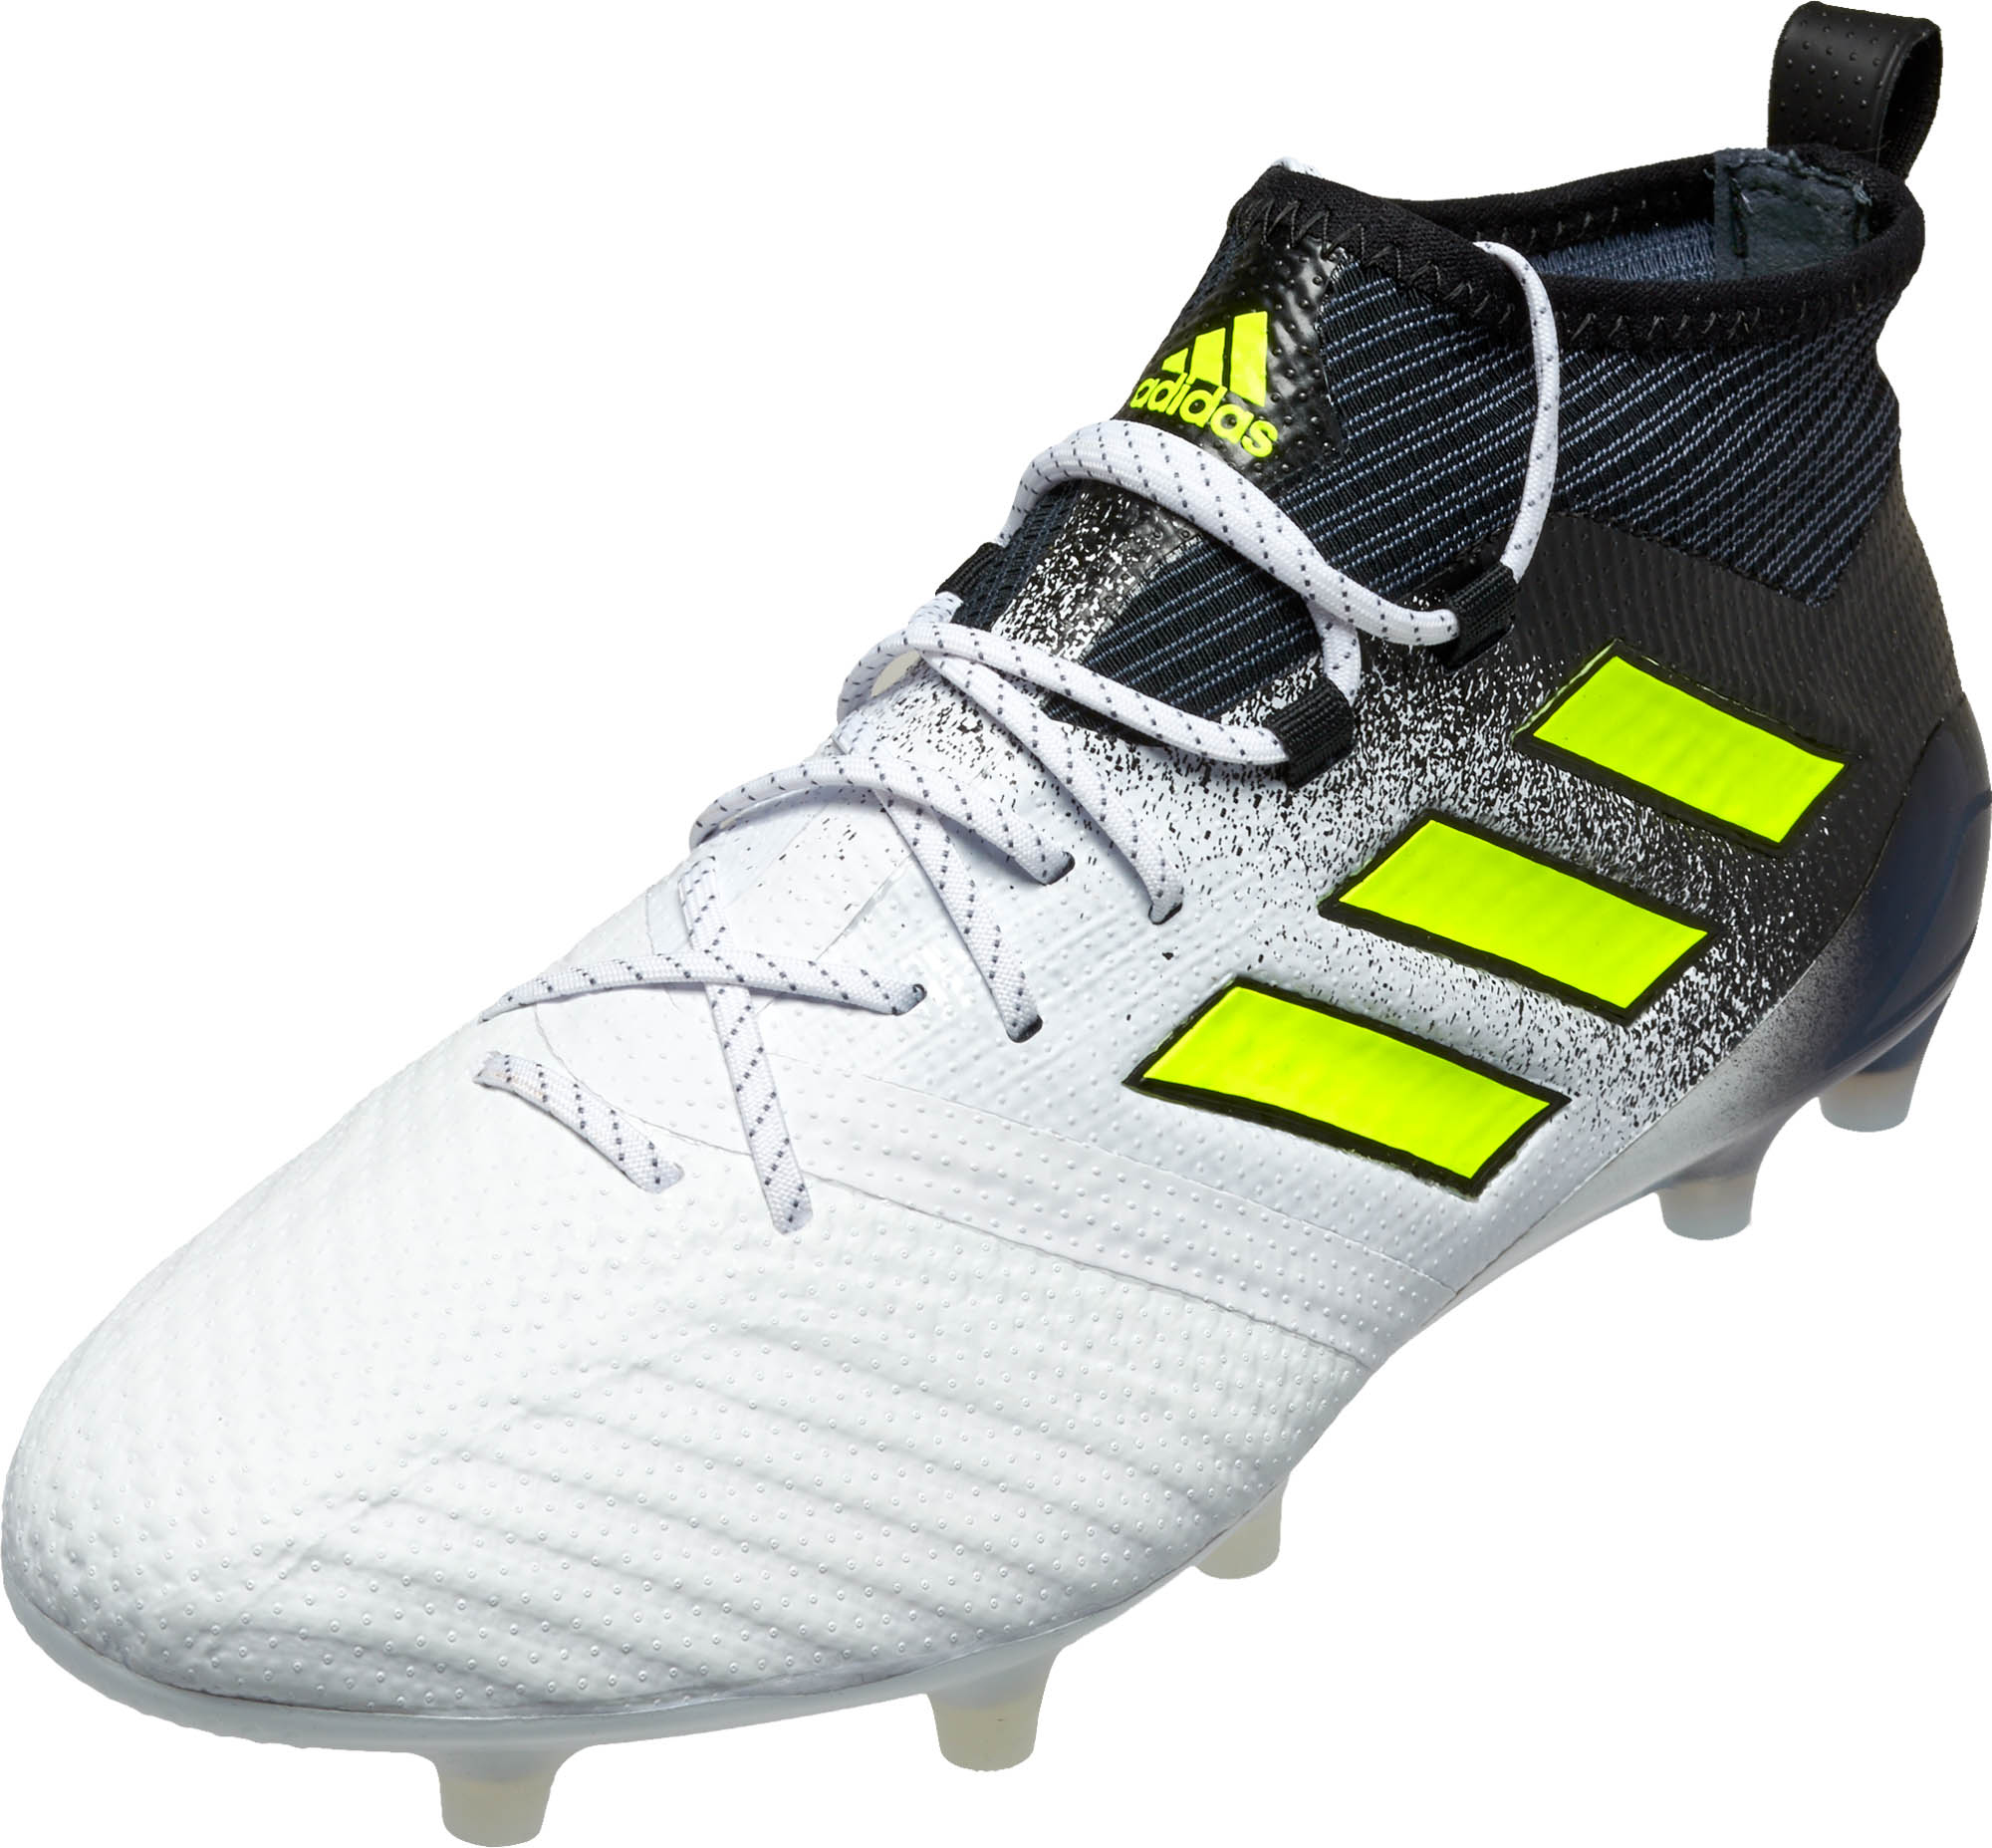 separation shoes e2f69 3b451 adidas ACE 17.1 FG – WhiteSolar Yellow